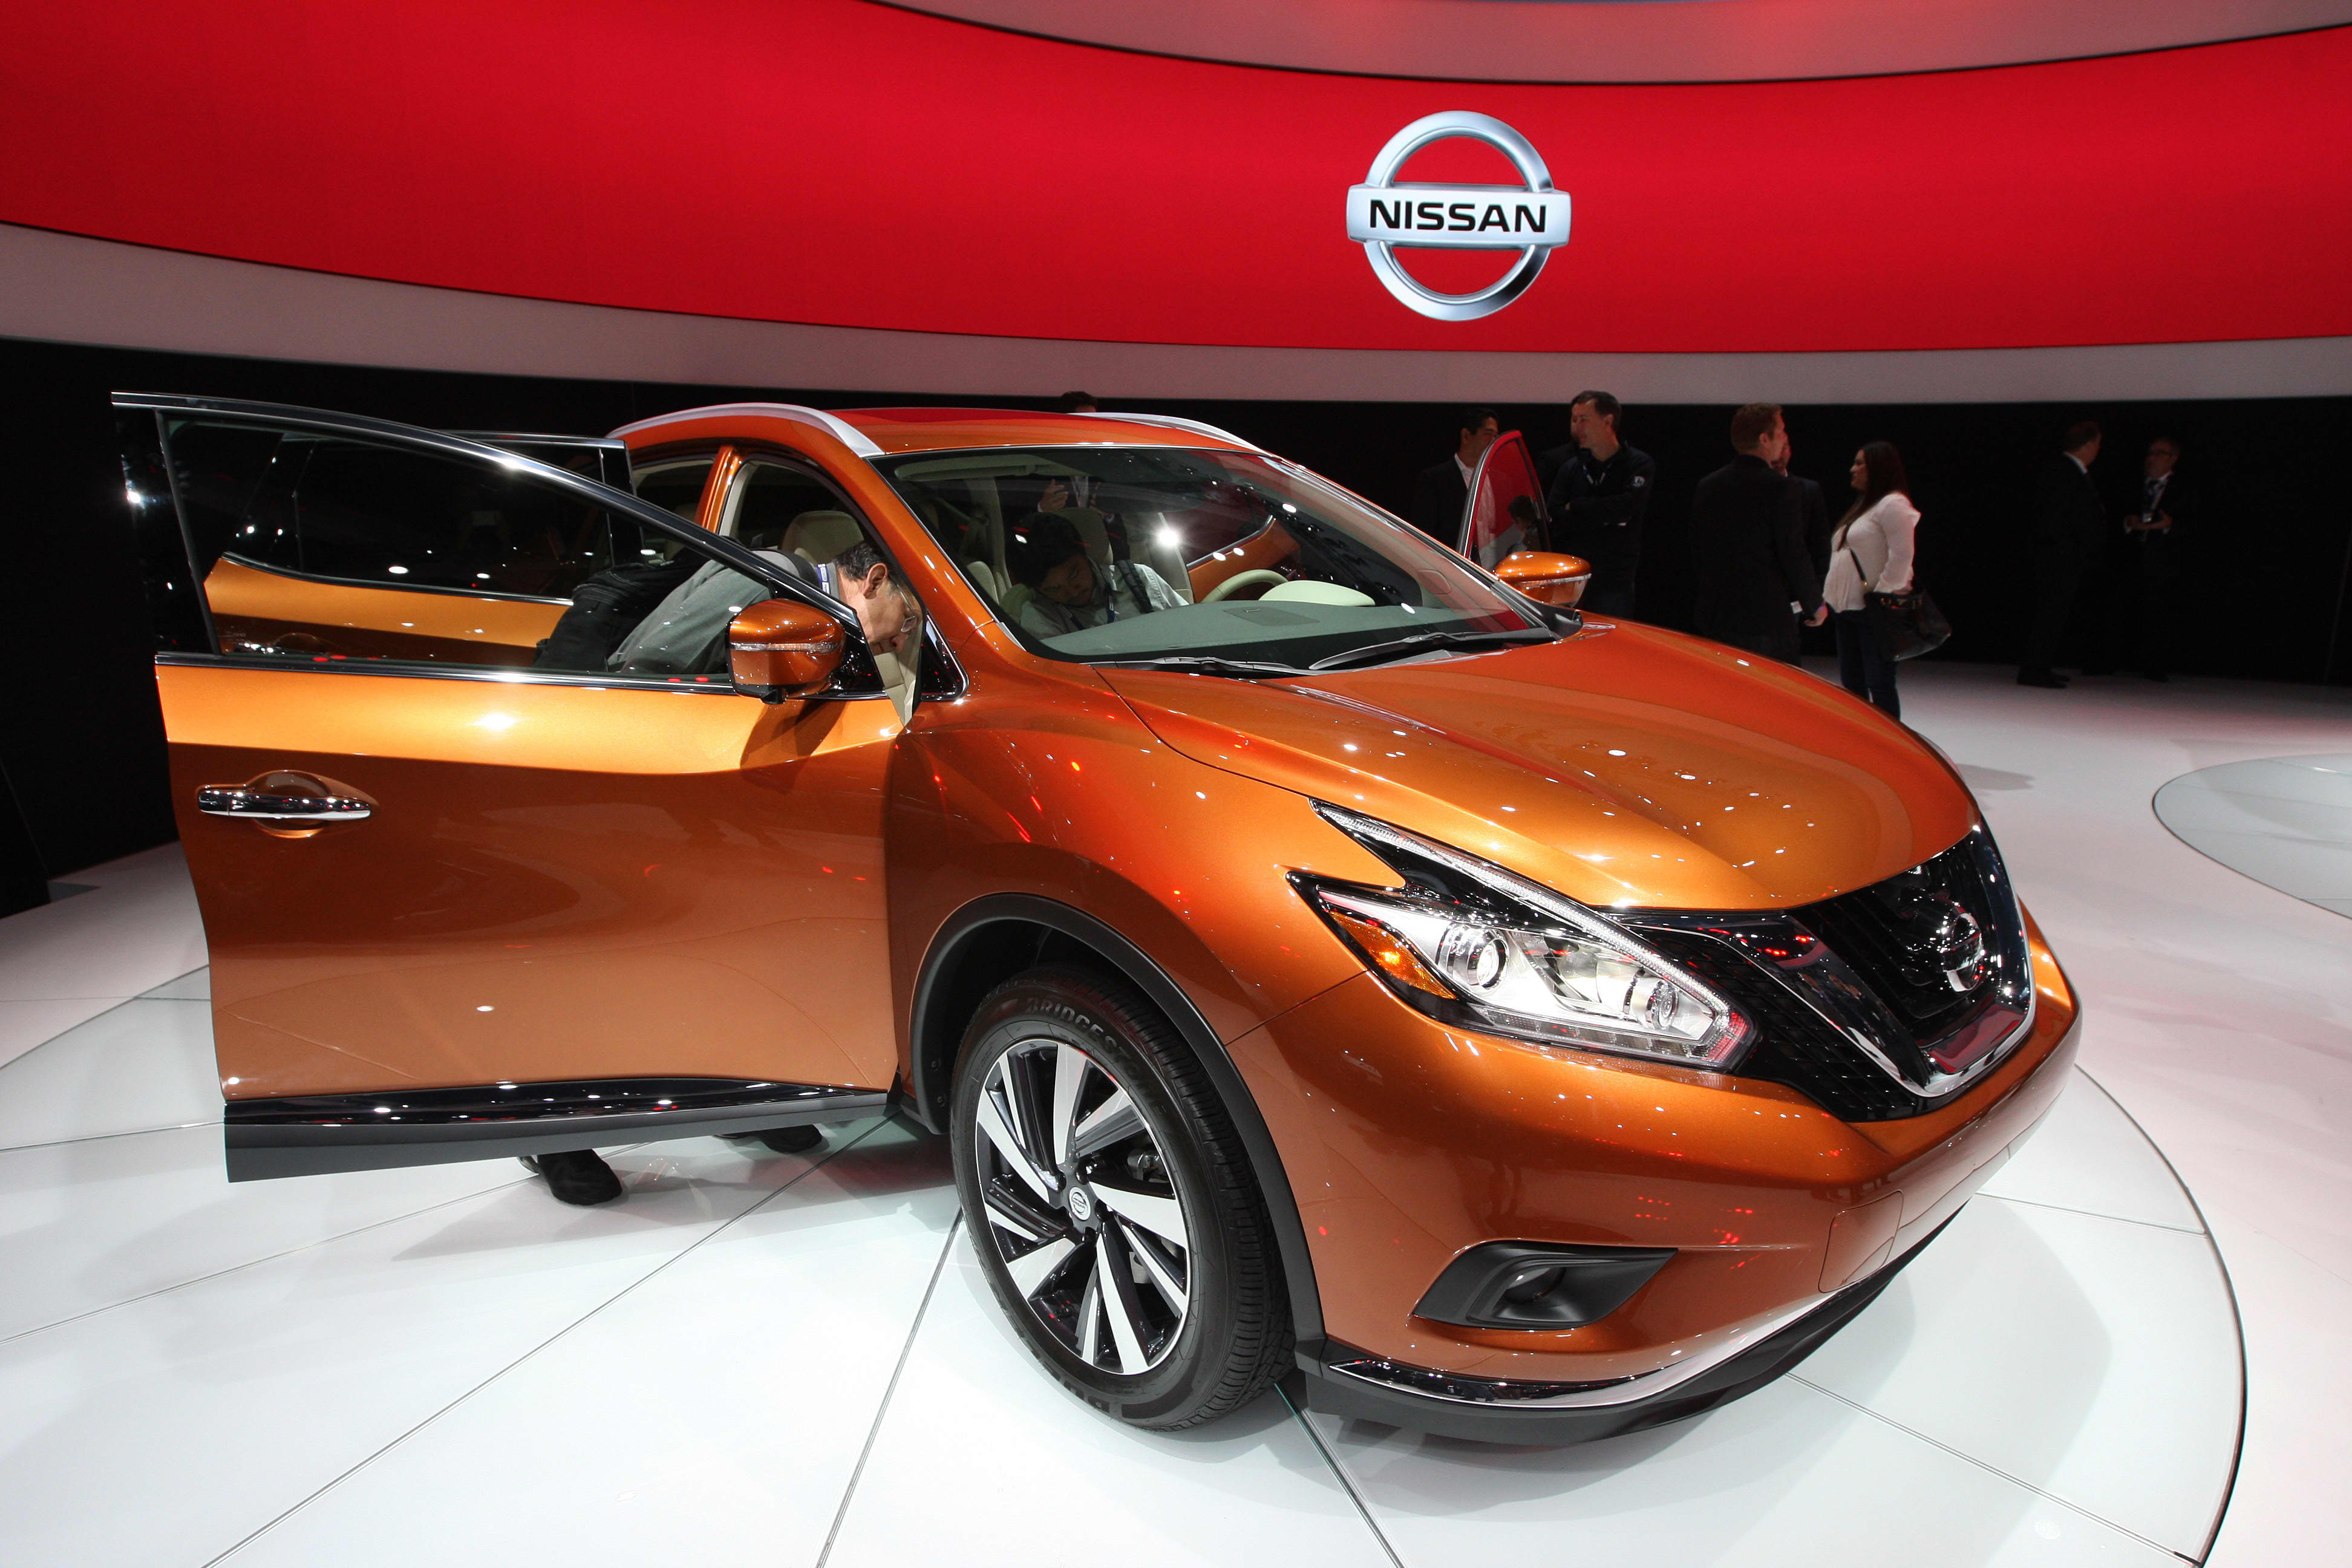 Nissan recalls more than 215,000 vehicles due to fire risk